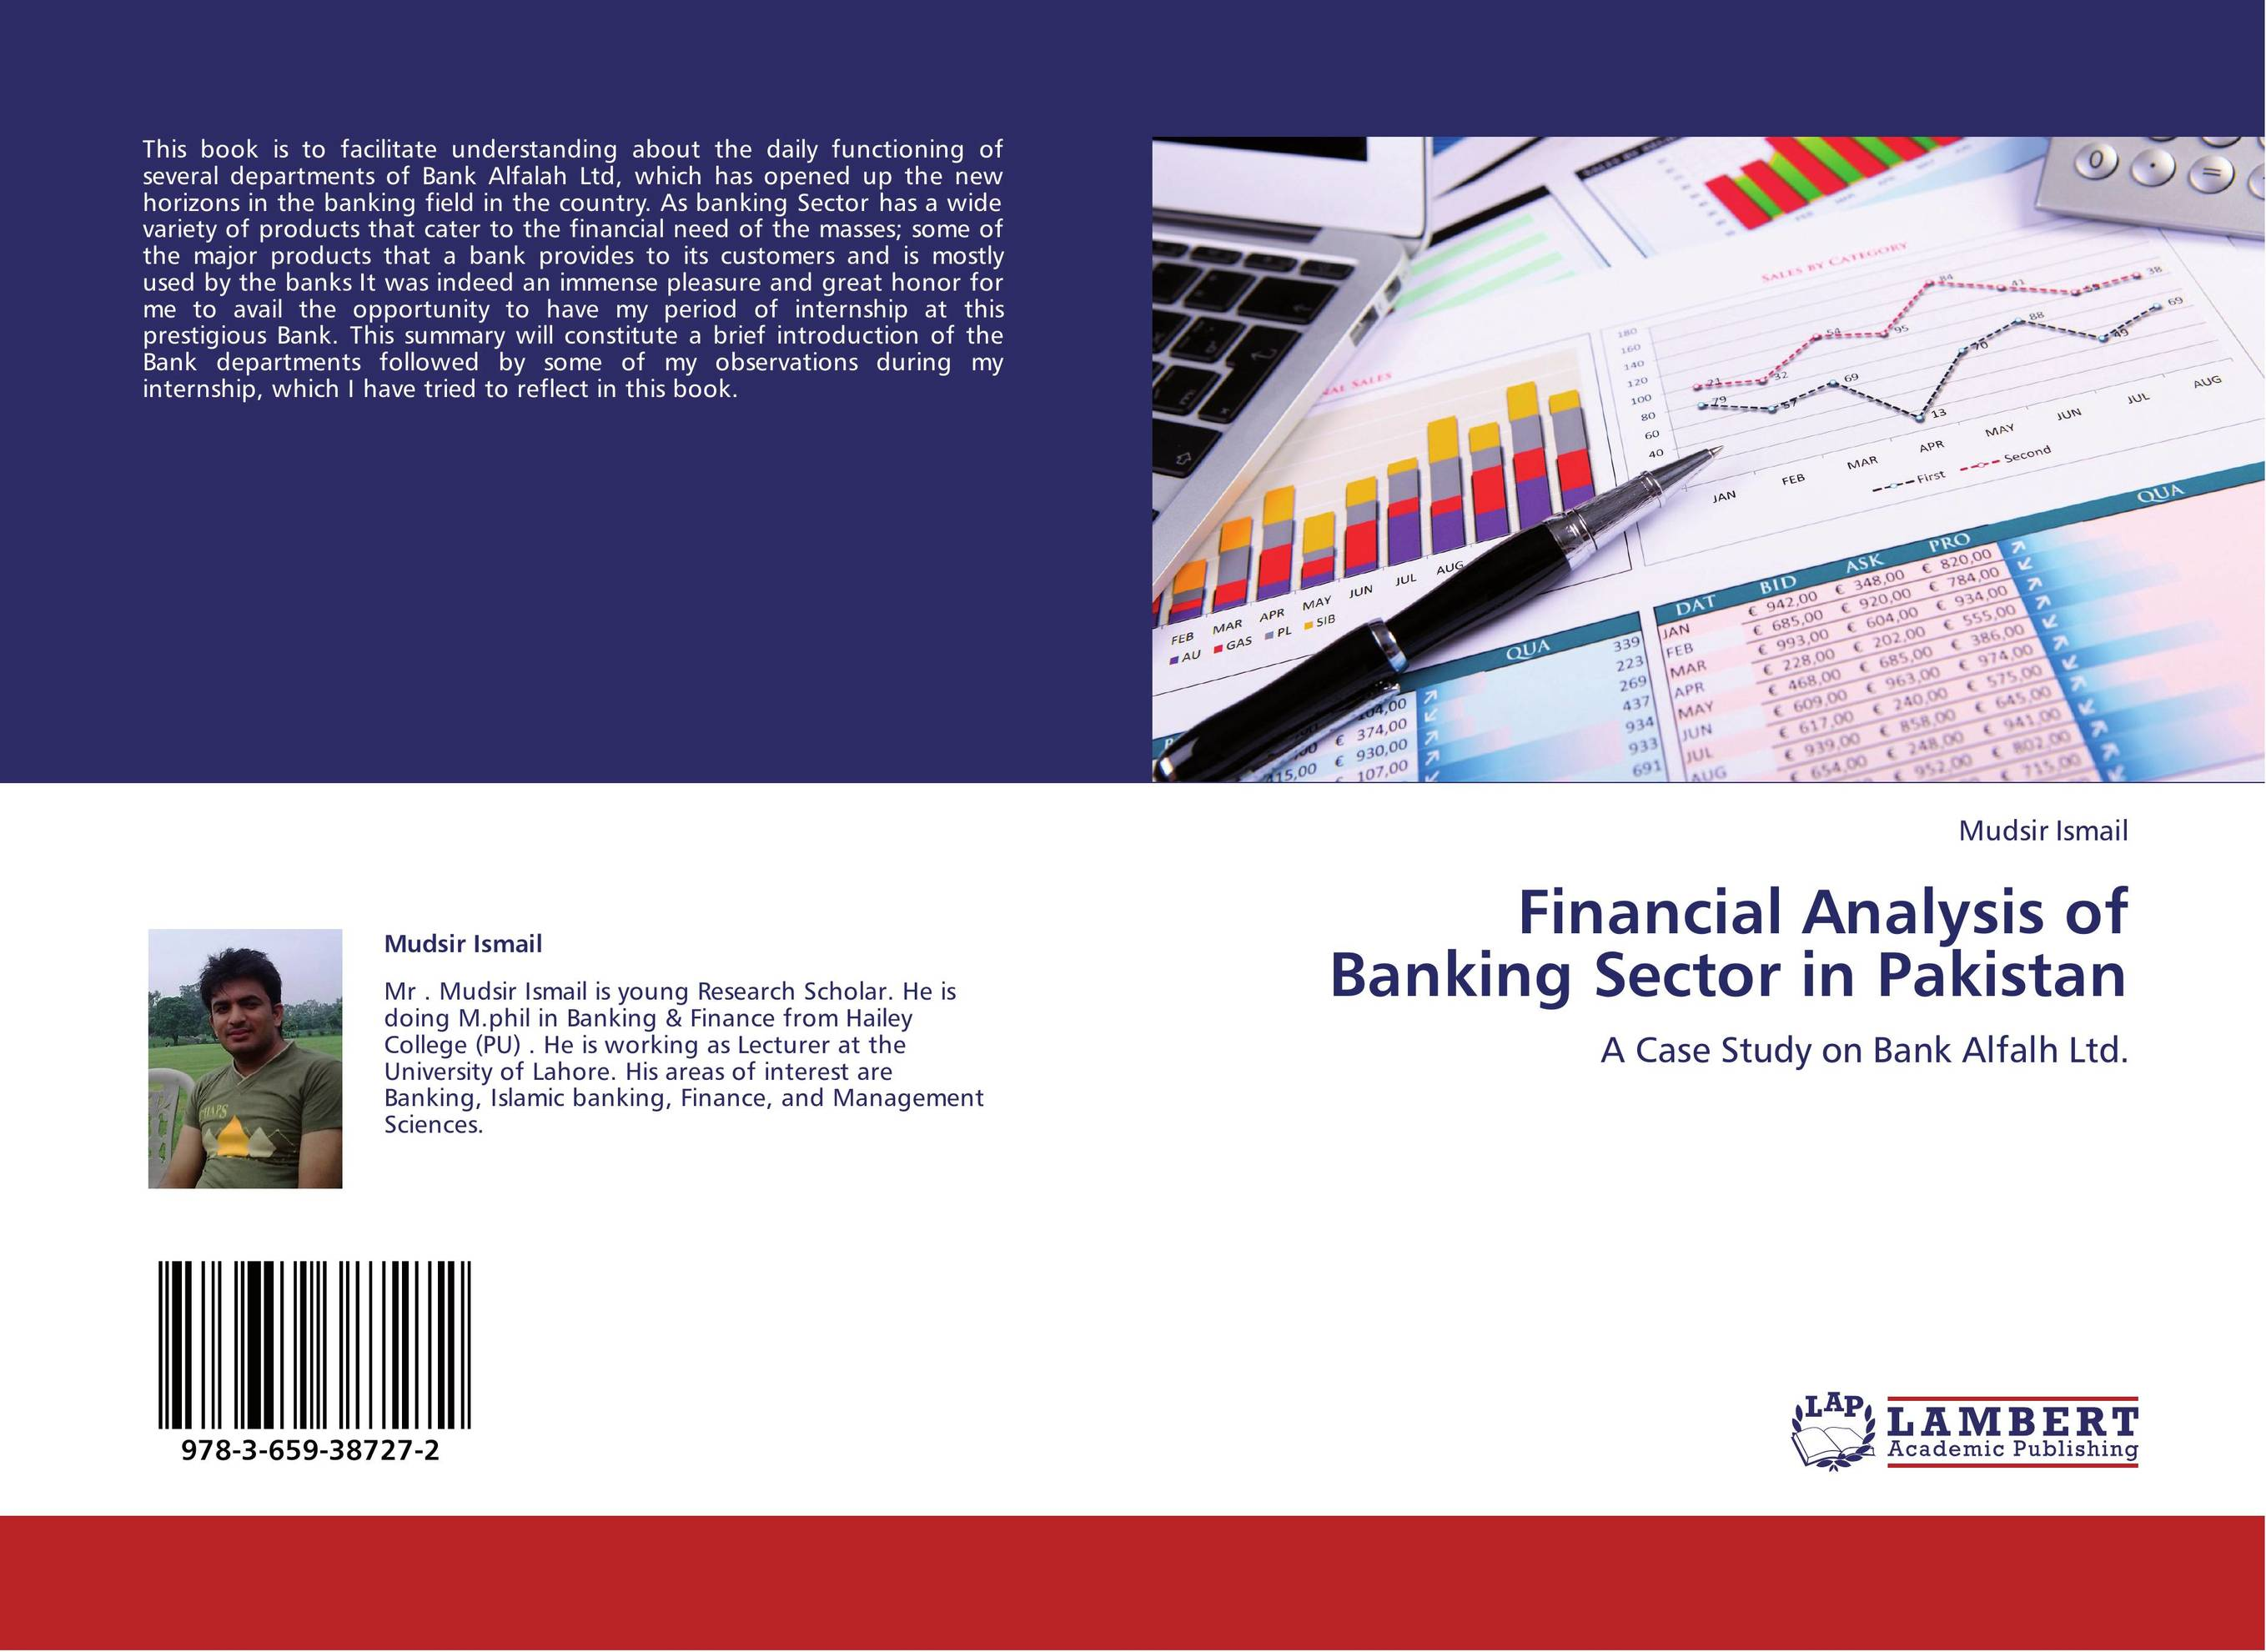 pakistans banking sector industry analysis Financial sector plays a vital role in strengthening economic growth of a country the role of china-pakistan economic corridor (cpec) and its possible impact on banking industry of pakistan is.